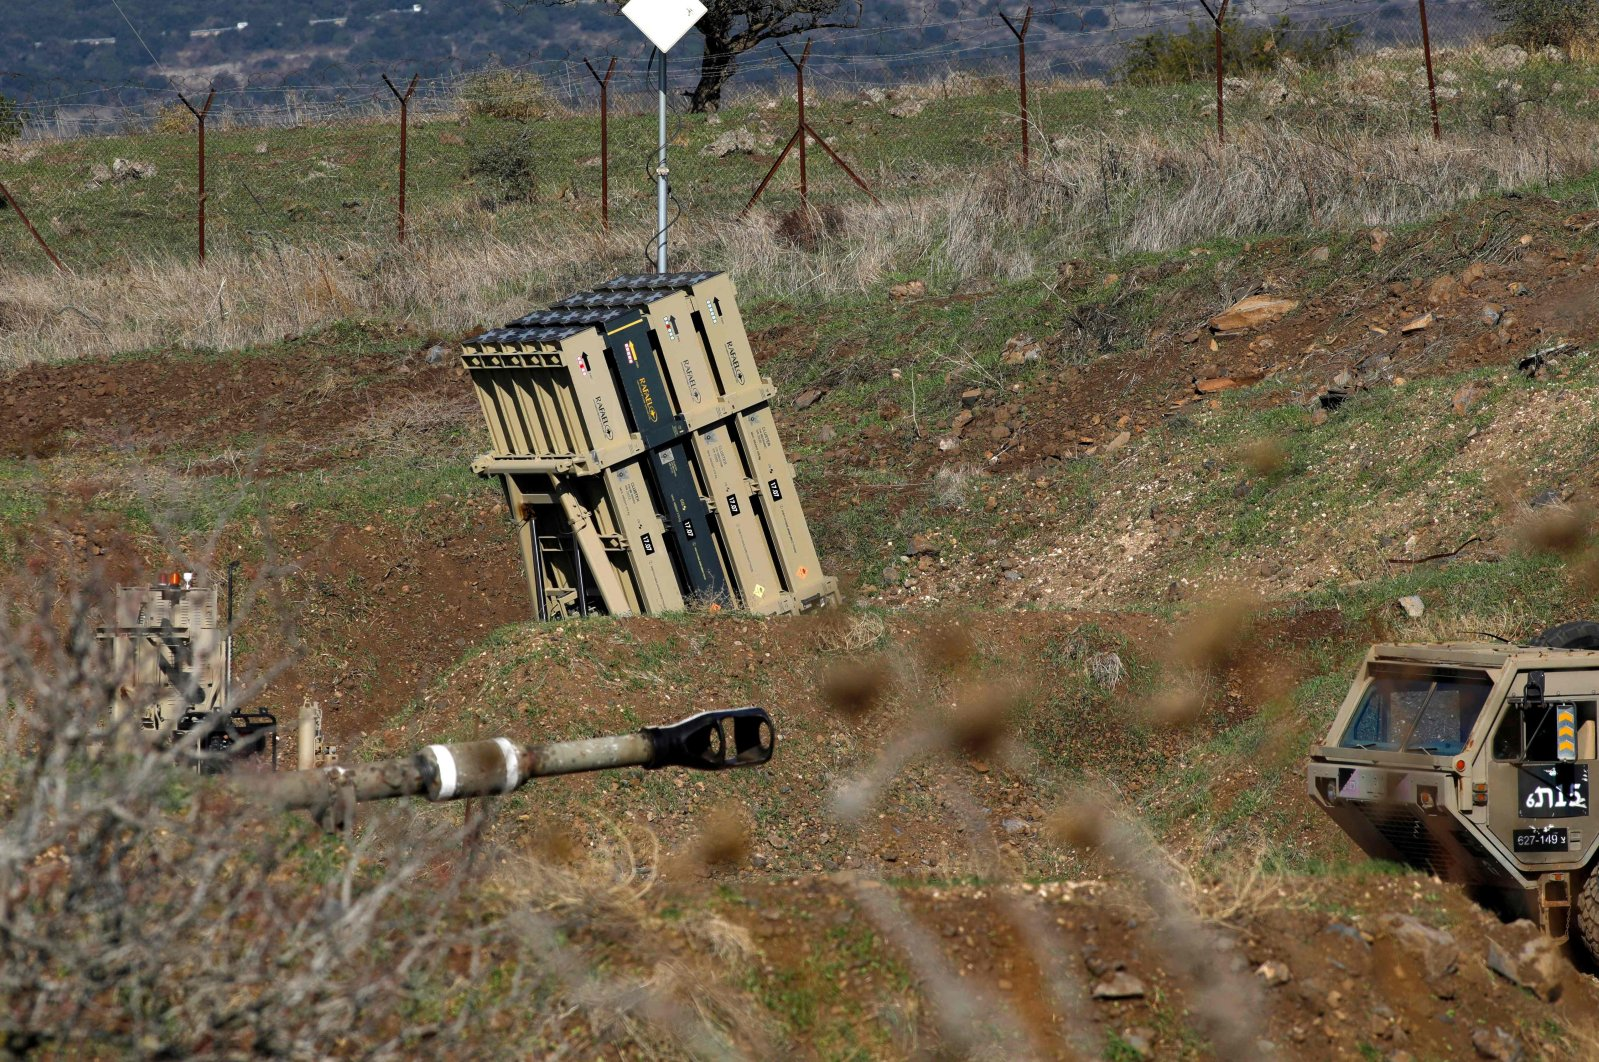 A battery of Israel's Iron Dome, designed to intercept and destroy incoming short-range rockets and artillery shells, is pictured in the Israeli-annexed Golan Heights near the border with Syria, on Nov. 18, 2020. (AFP Photo)